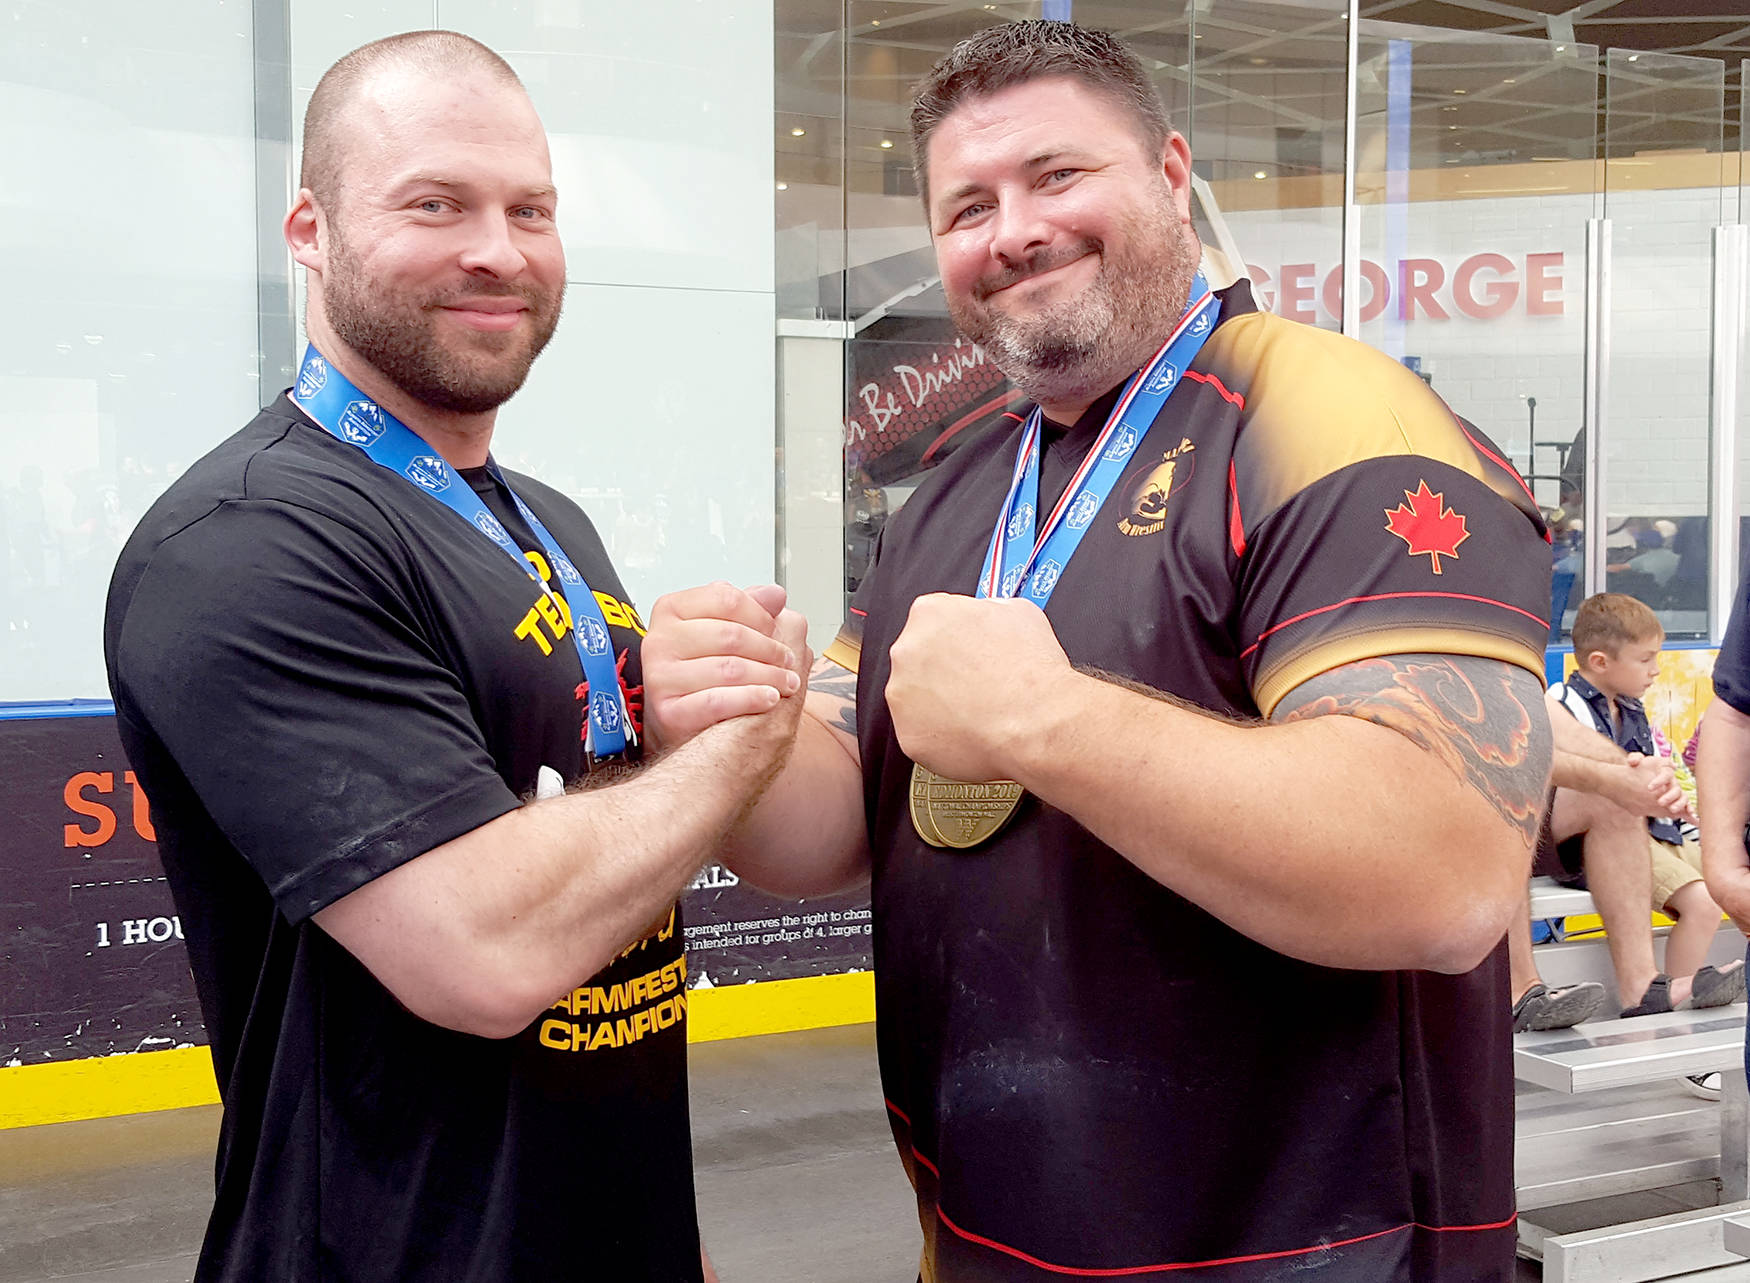 Chilliwack's Justin Hancock (left) with big-armed beast Ryan Espey from Manitoba, who won the 110 kilogram weight class in both arms. (Submitted photo)